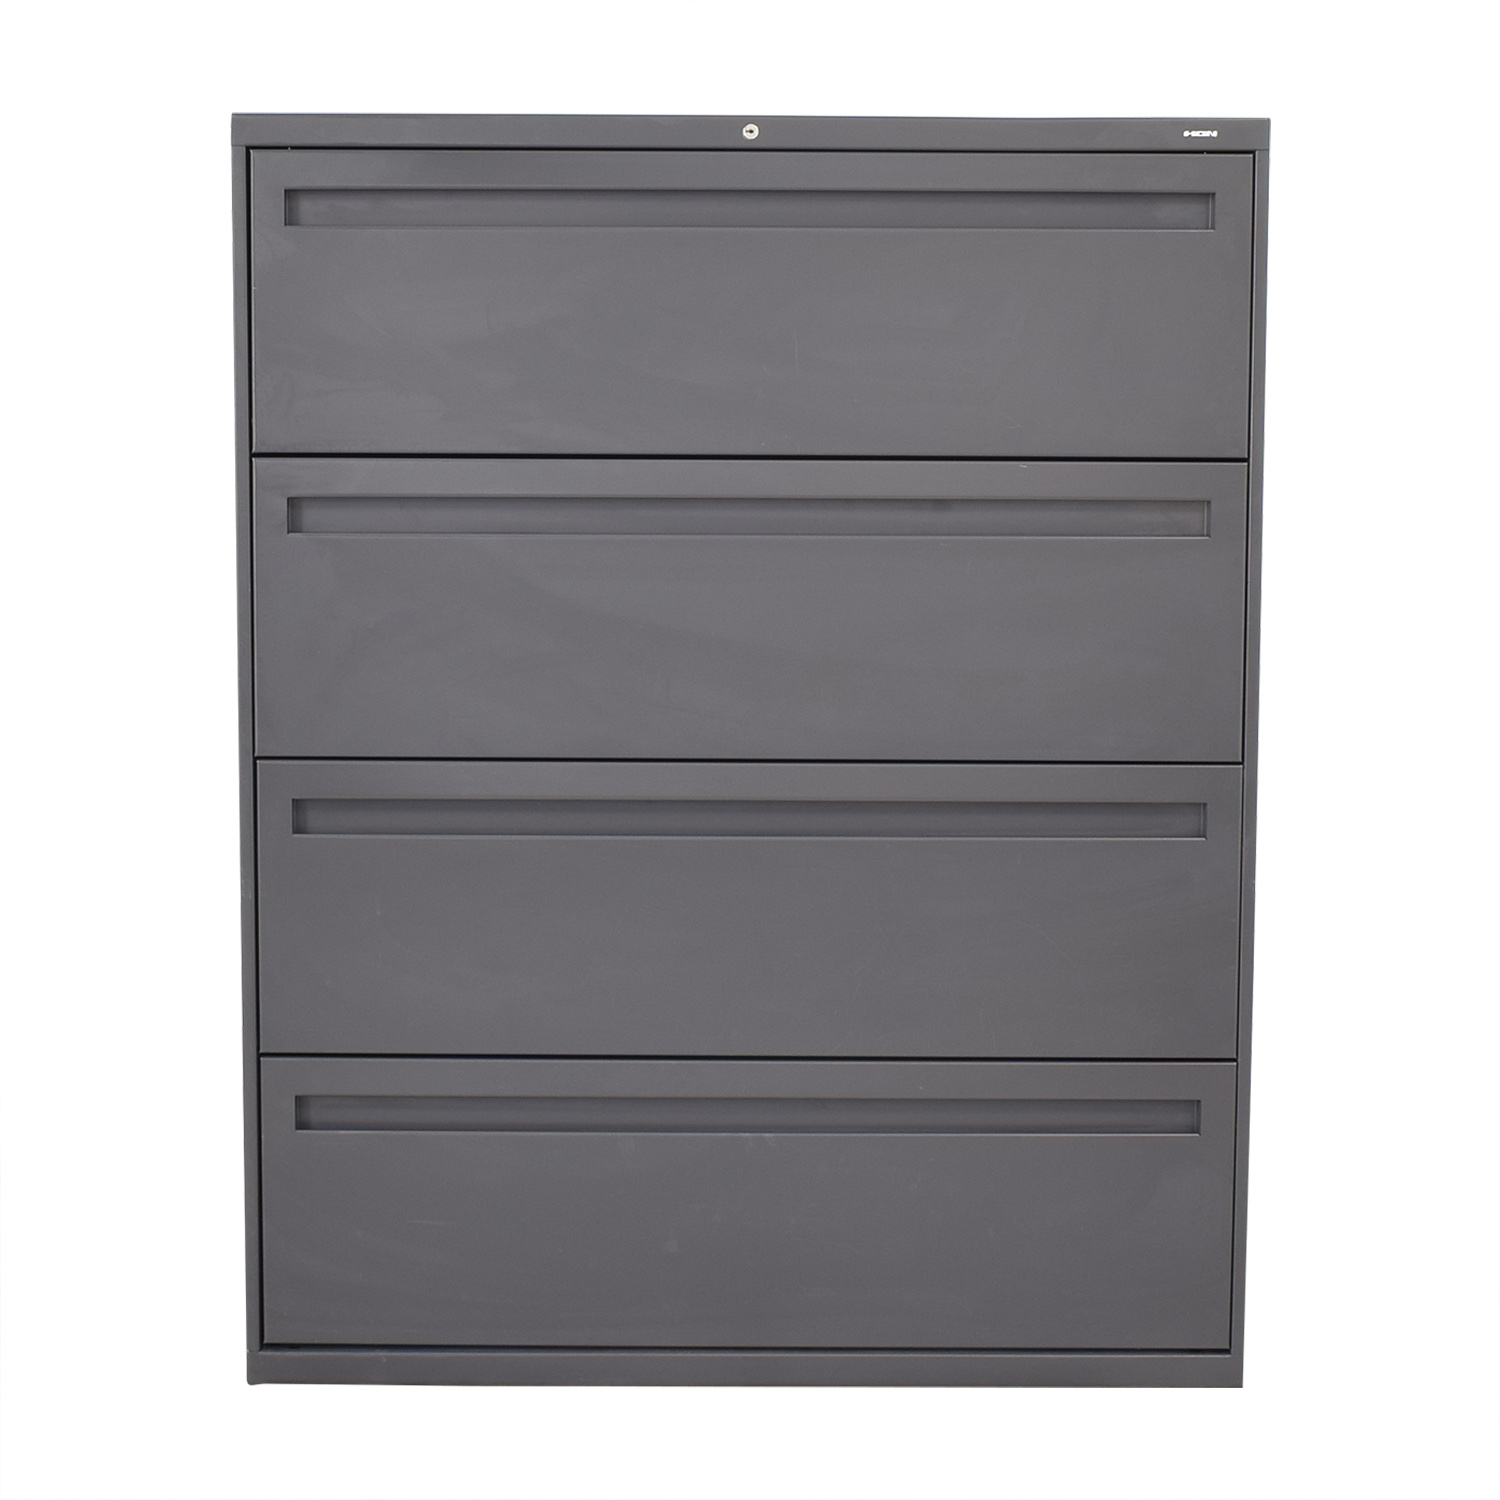 Hon Hon 4-Drawer Lateral Filing Cabinet grey